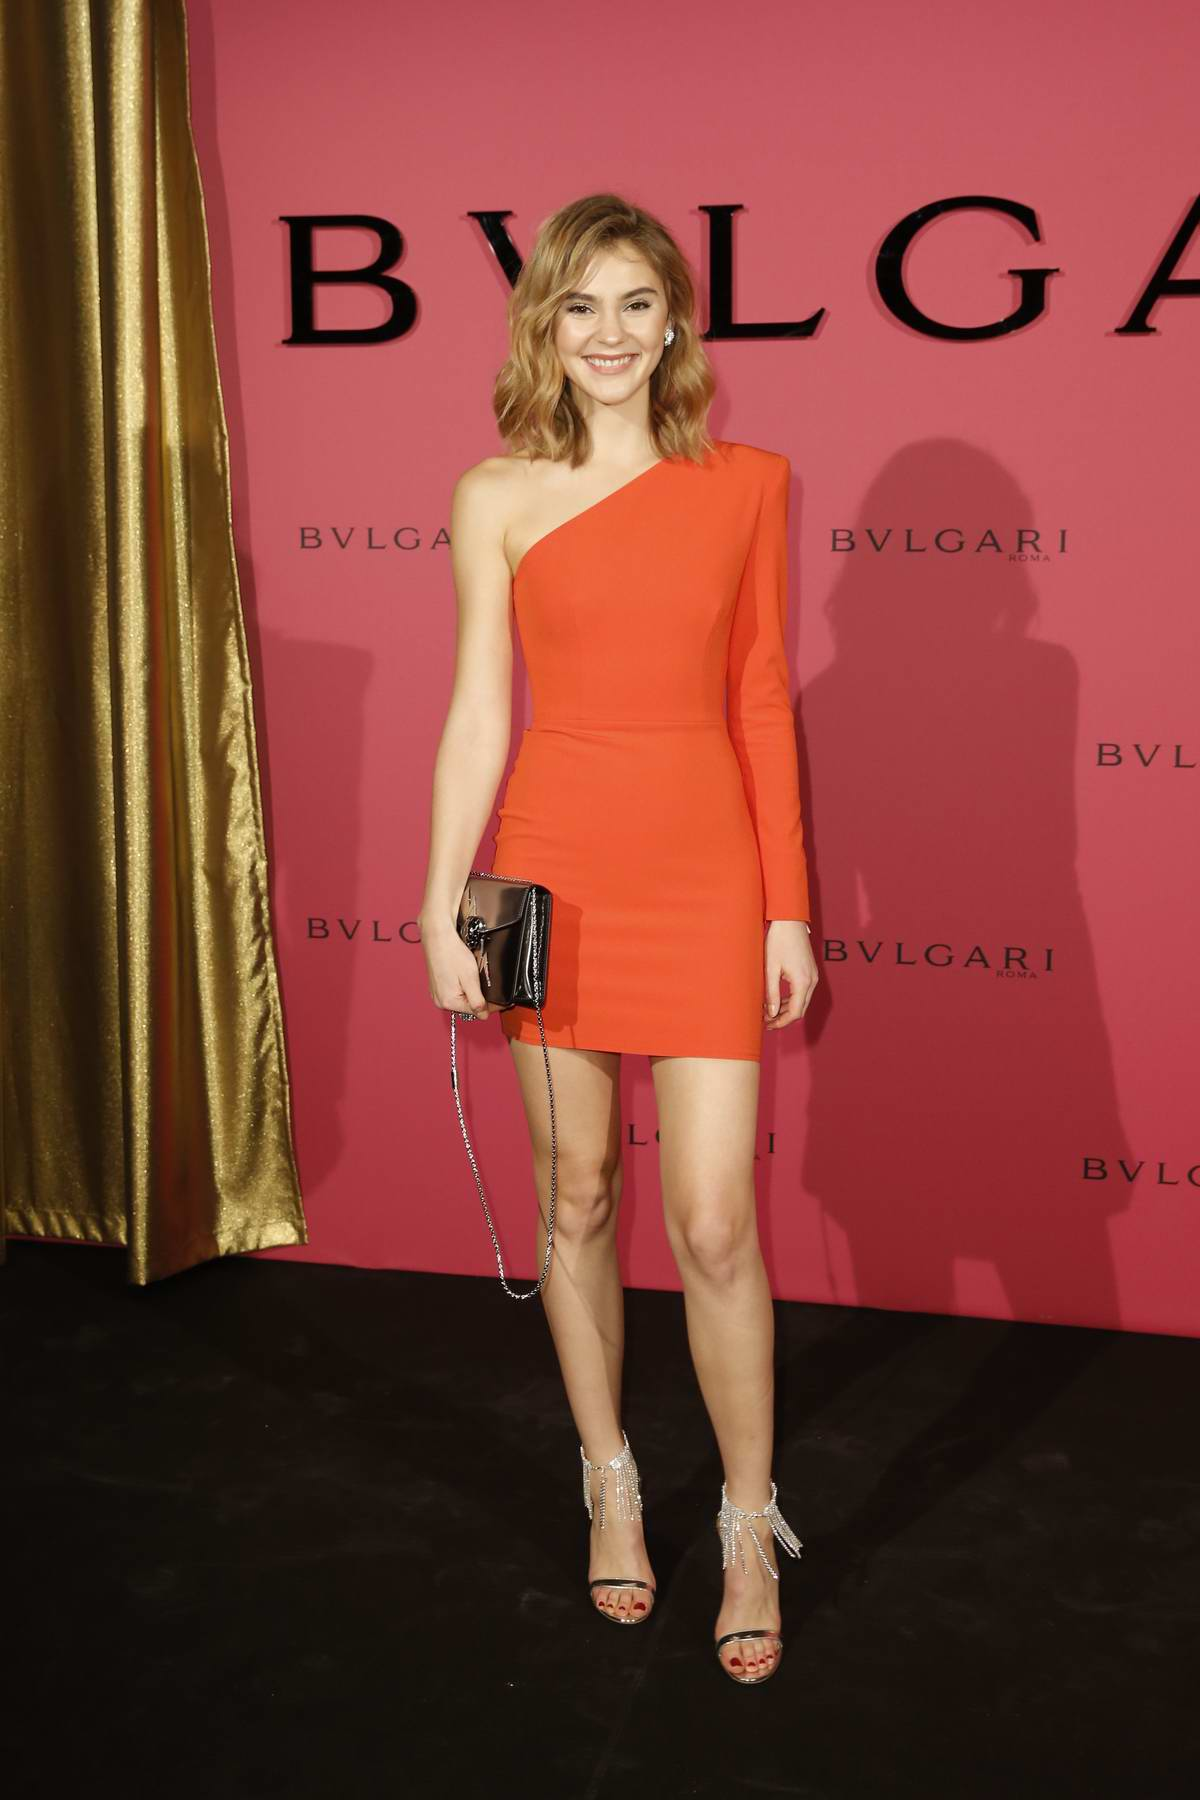 Stefanie Giesinger attends the Bulgari Party during 69th Berlinale International Film Festival in Berlin, Germany